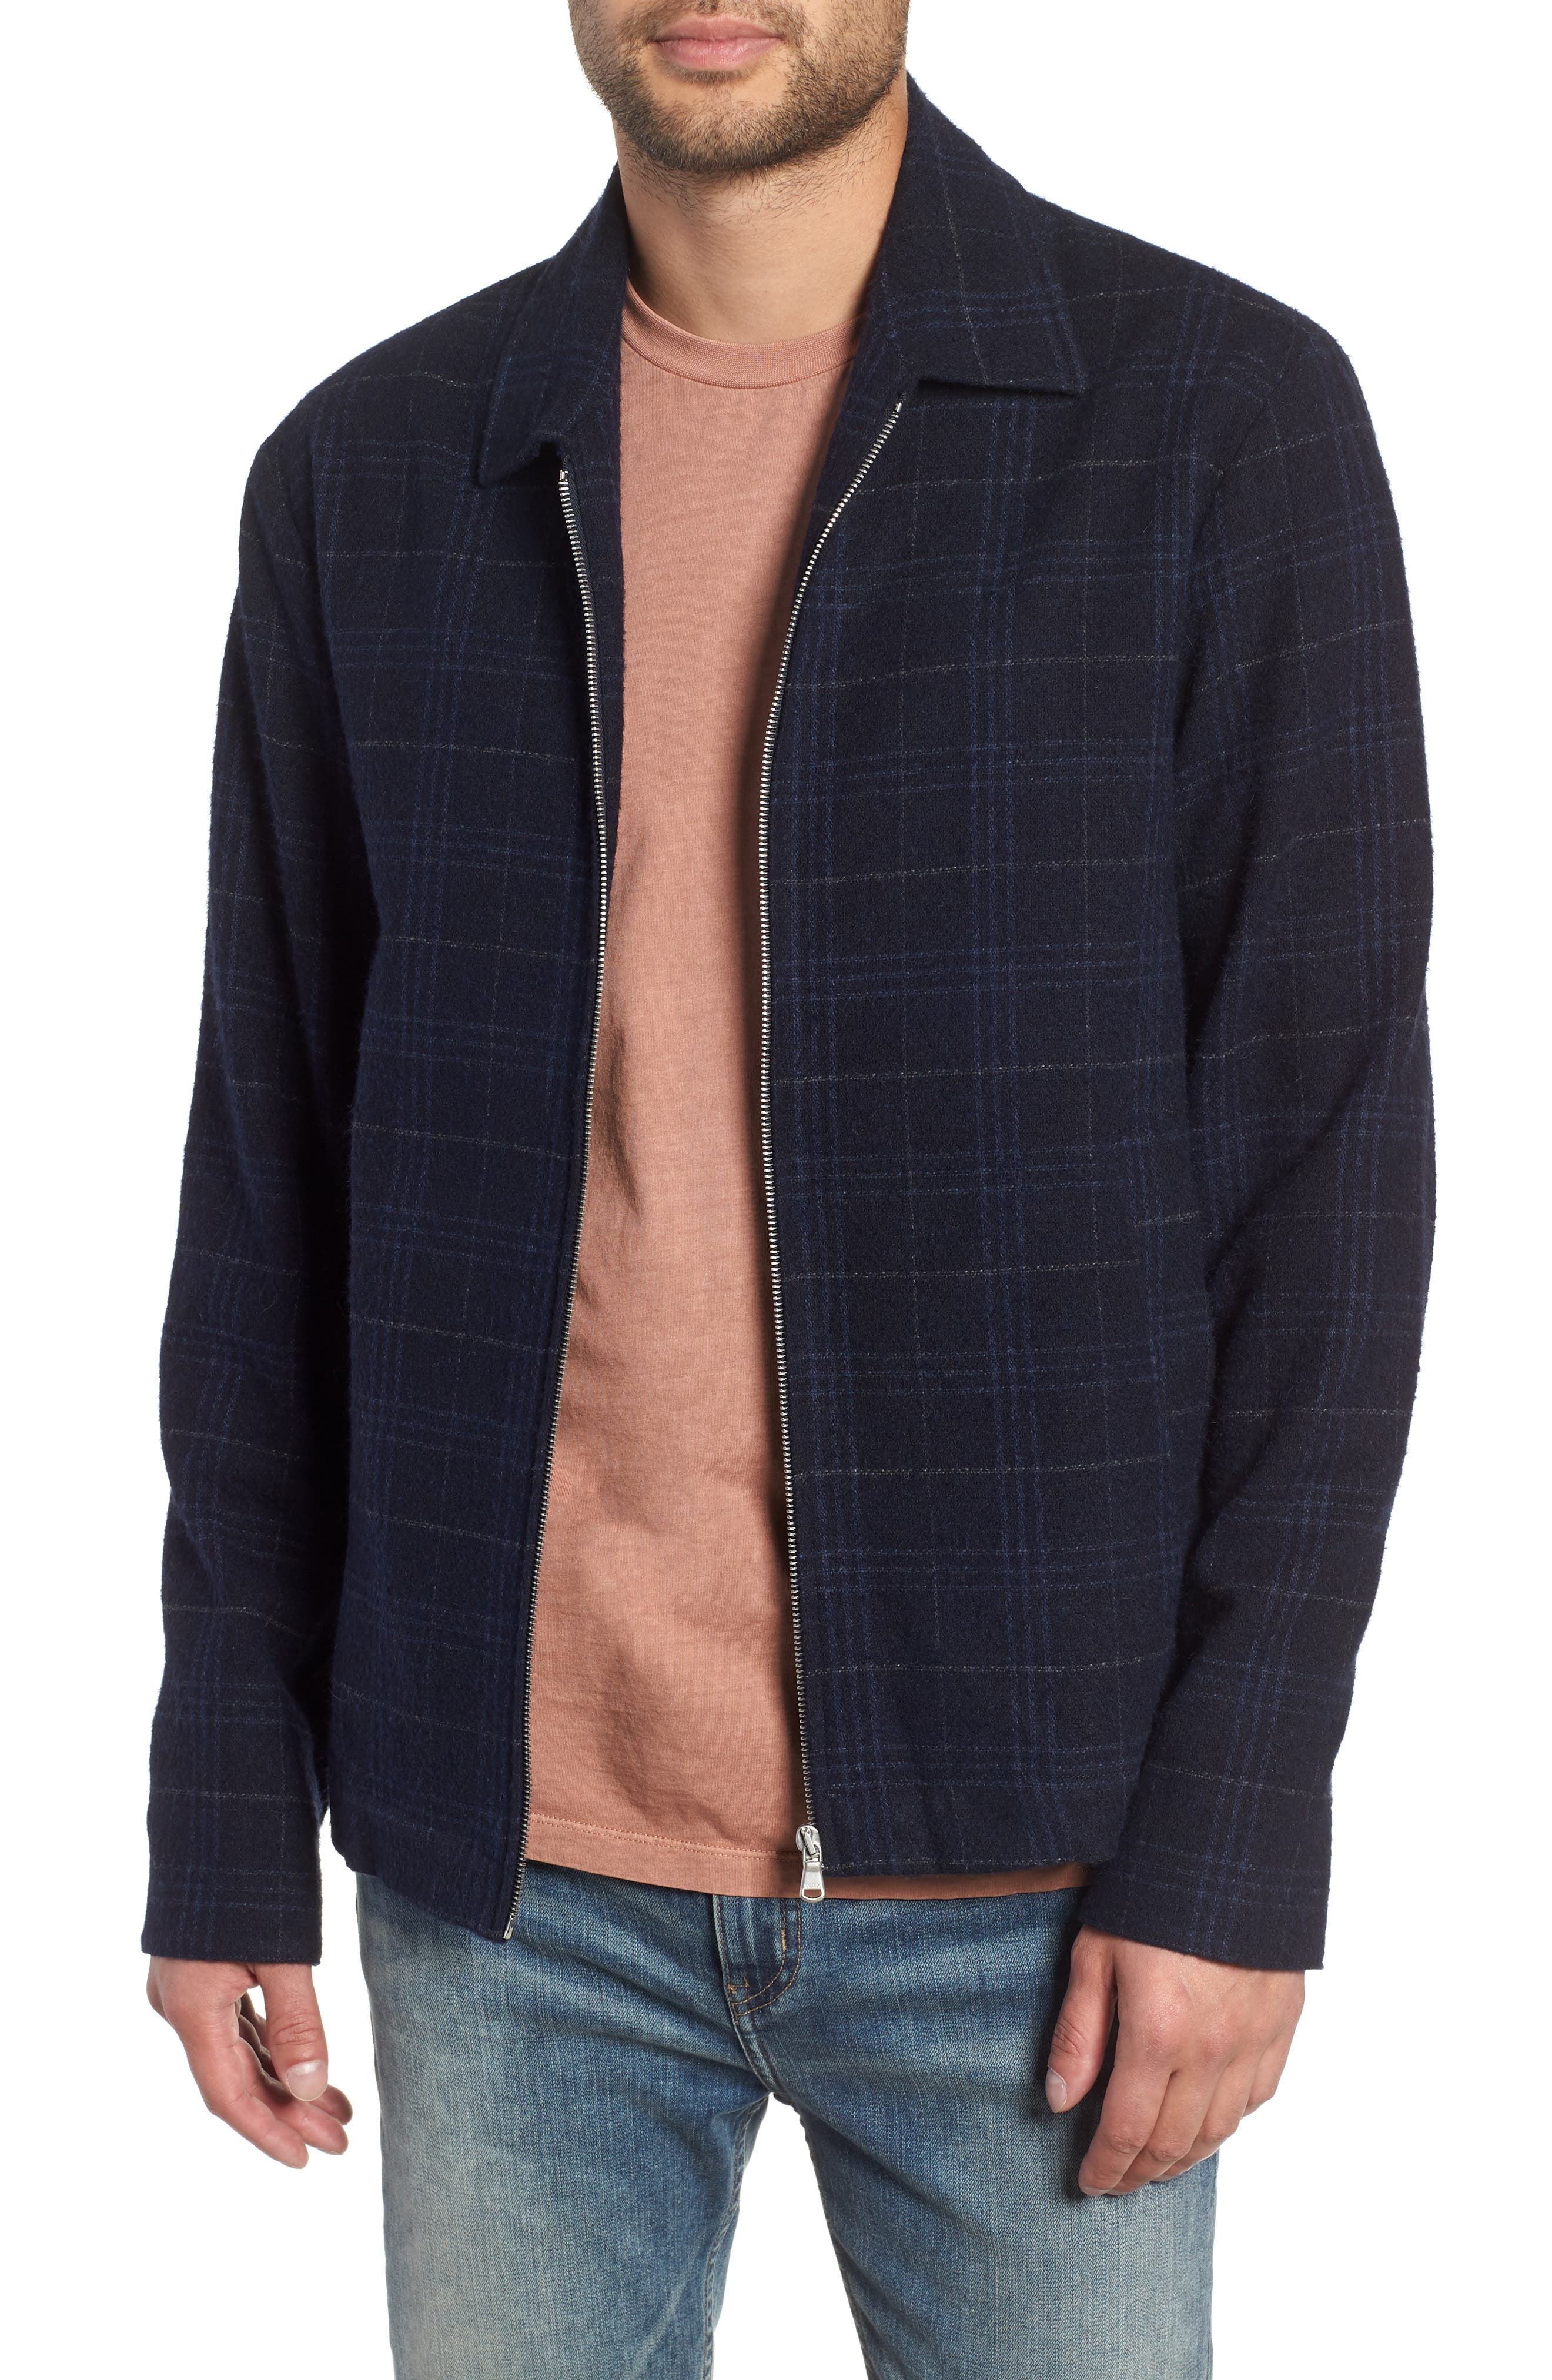 WAX LONDON Witham Coach's Jacket, Main, color, NAVY CHECK